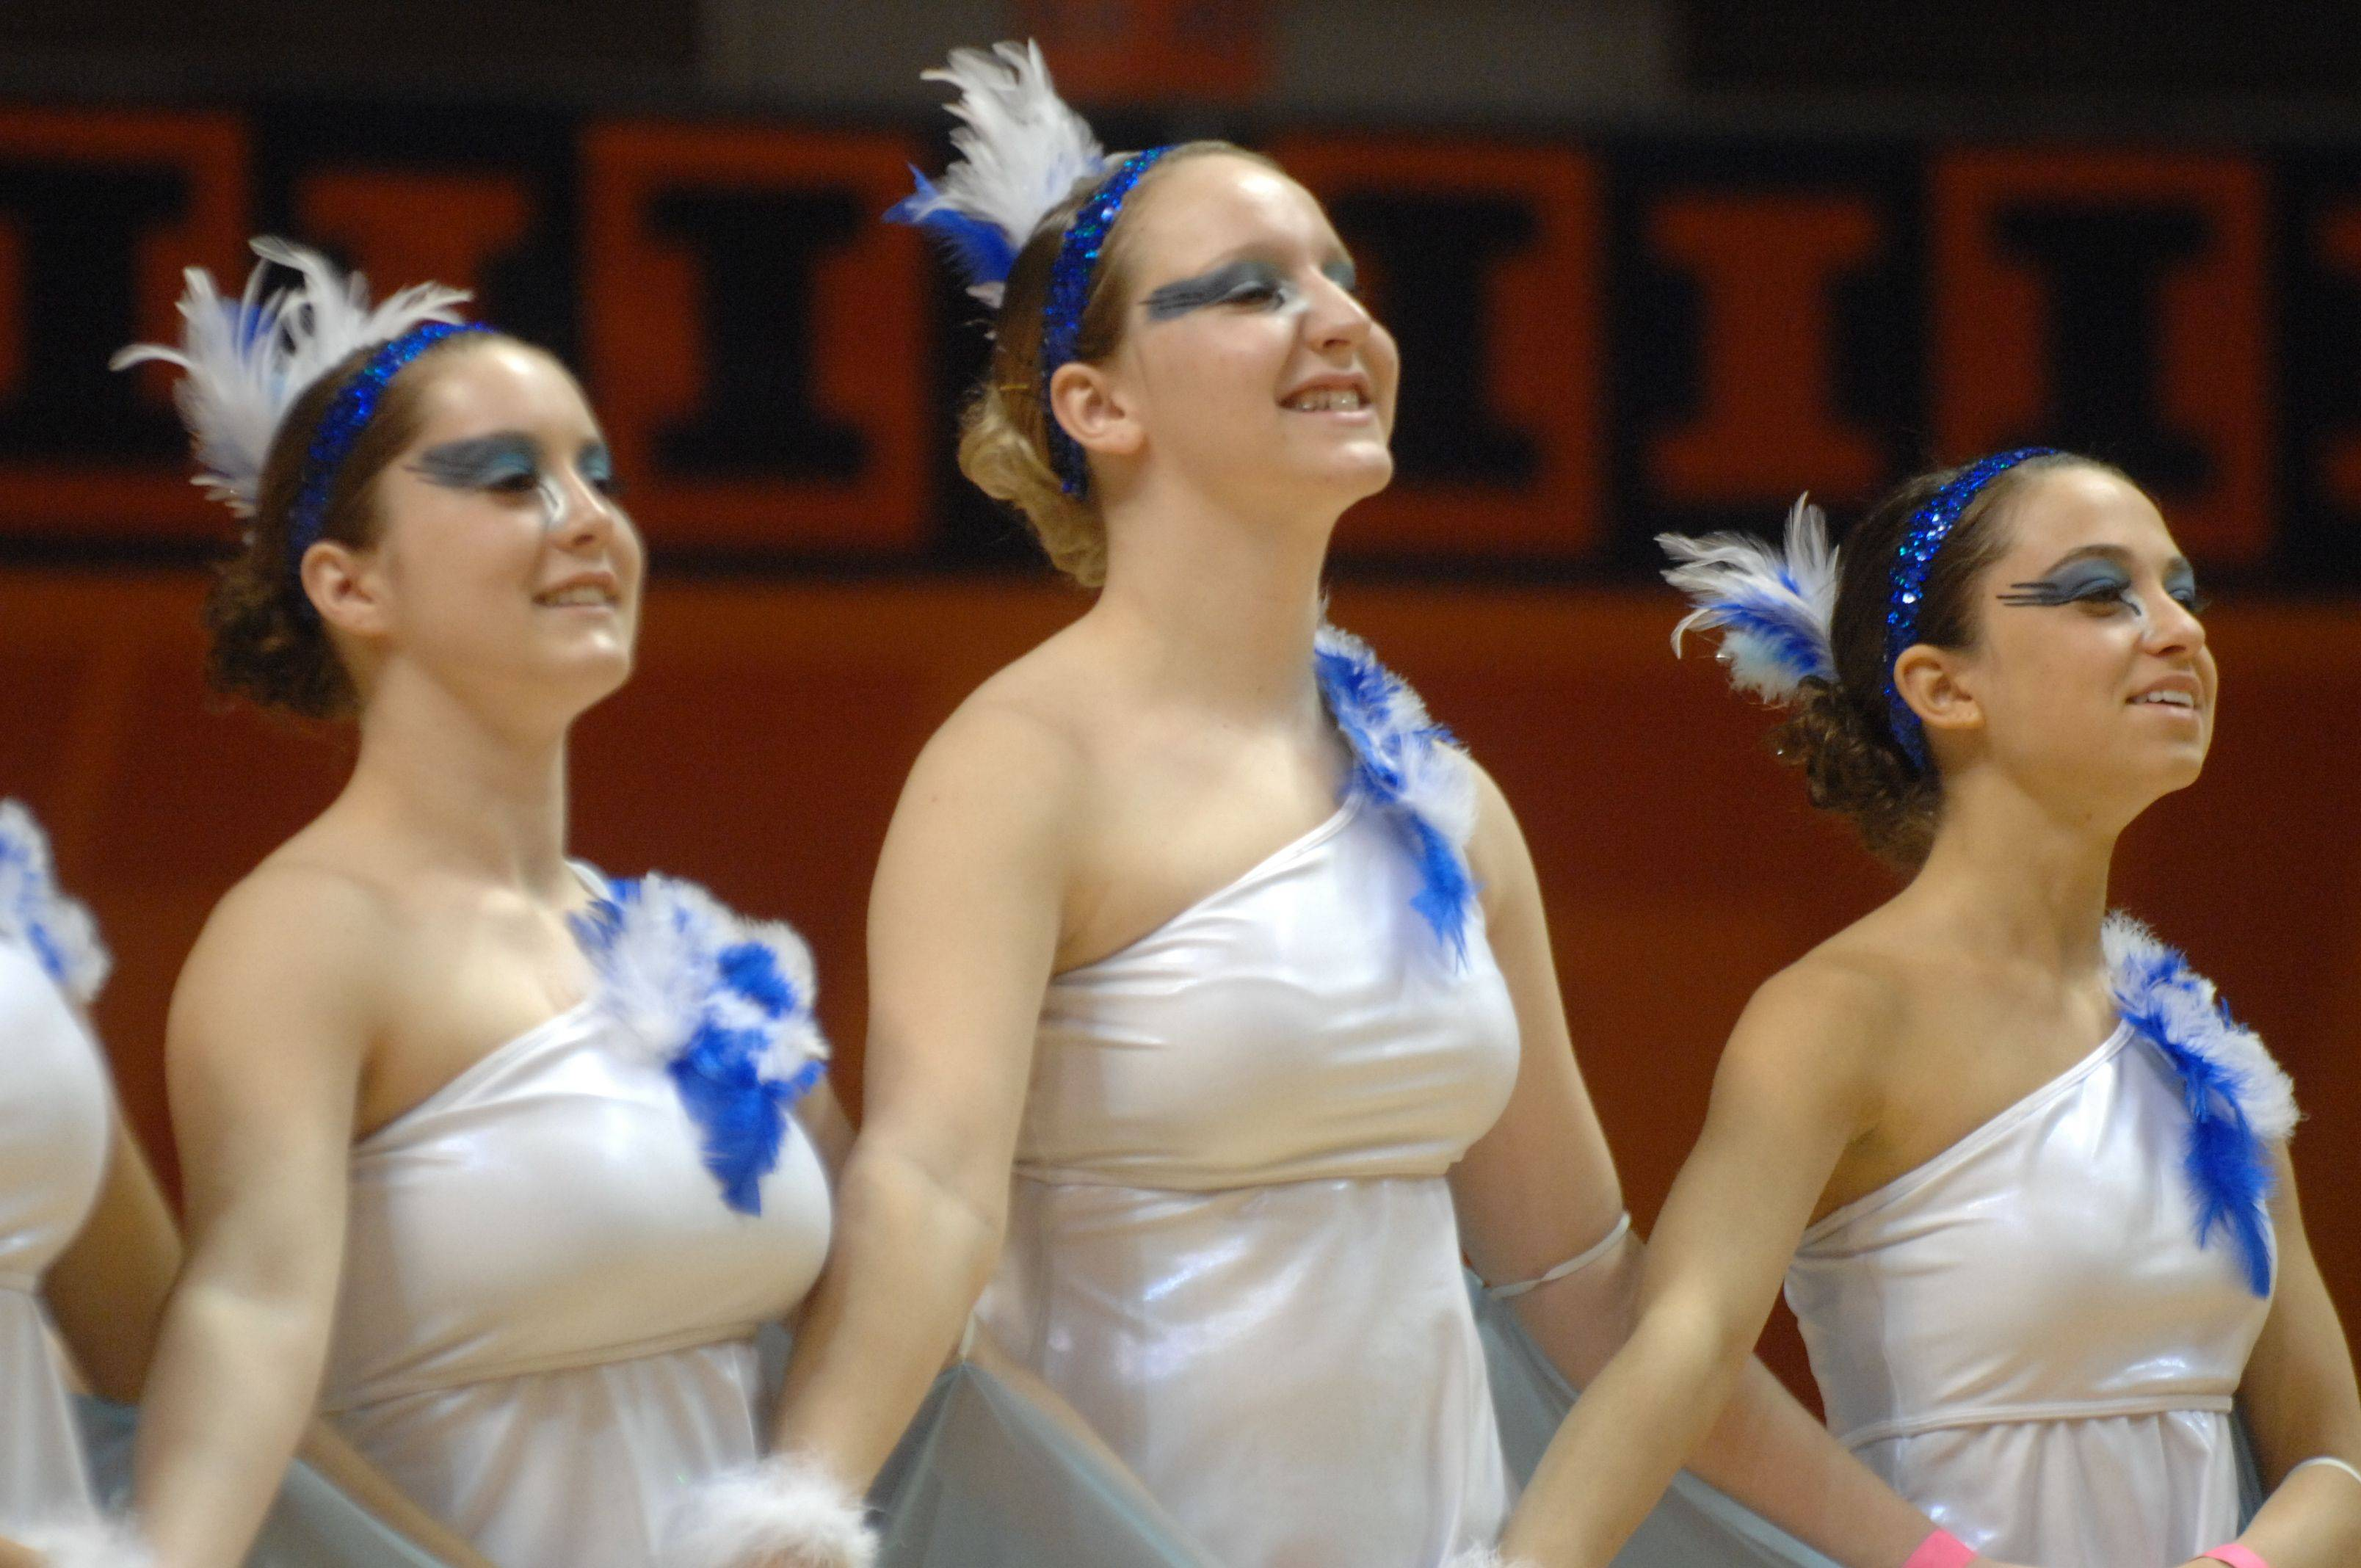 Illinois Drill Team Association State Finals at U of I in Champaign.